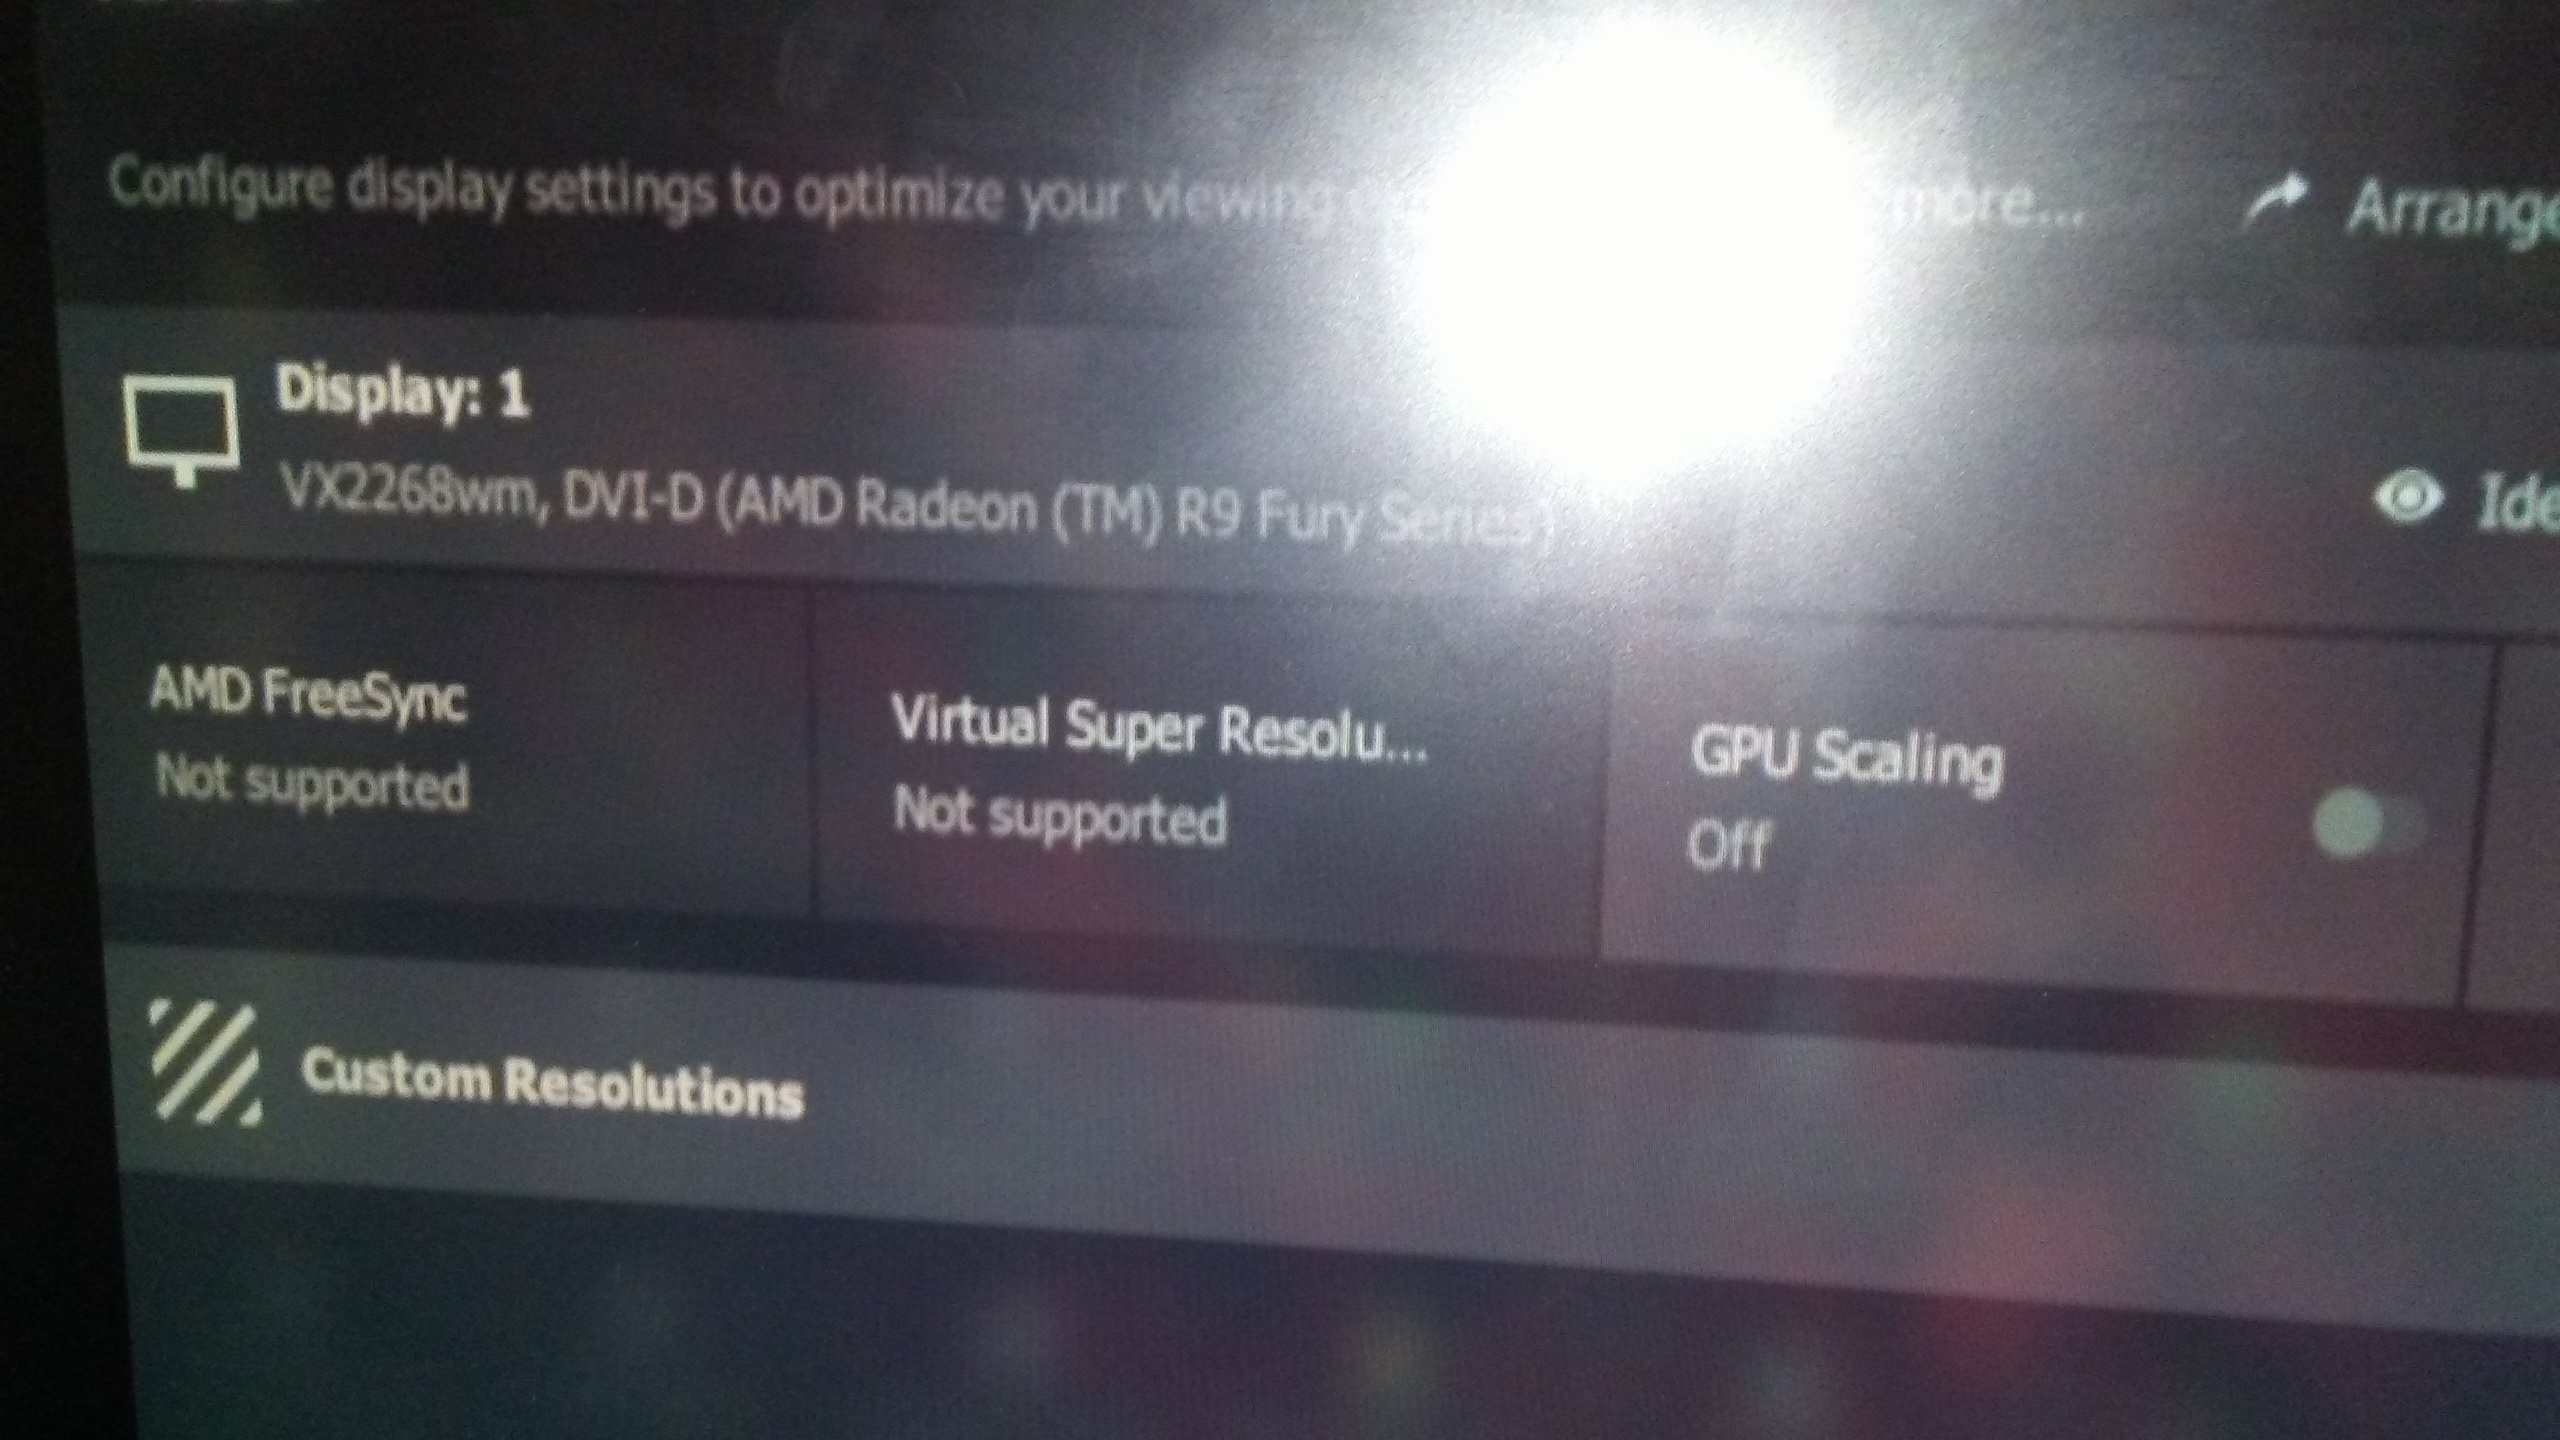 120hz or higher refresh on AMD Radeon? - Graphics Cards